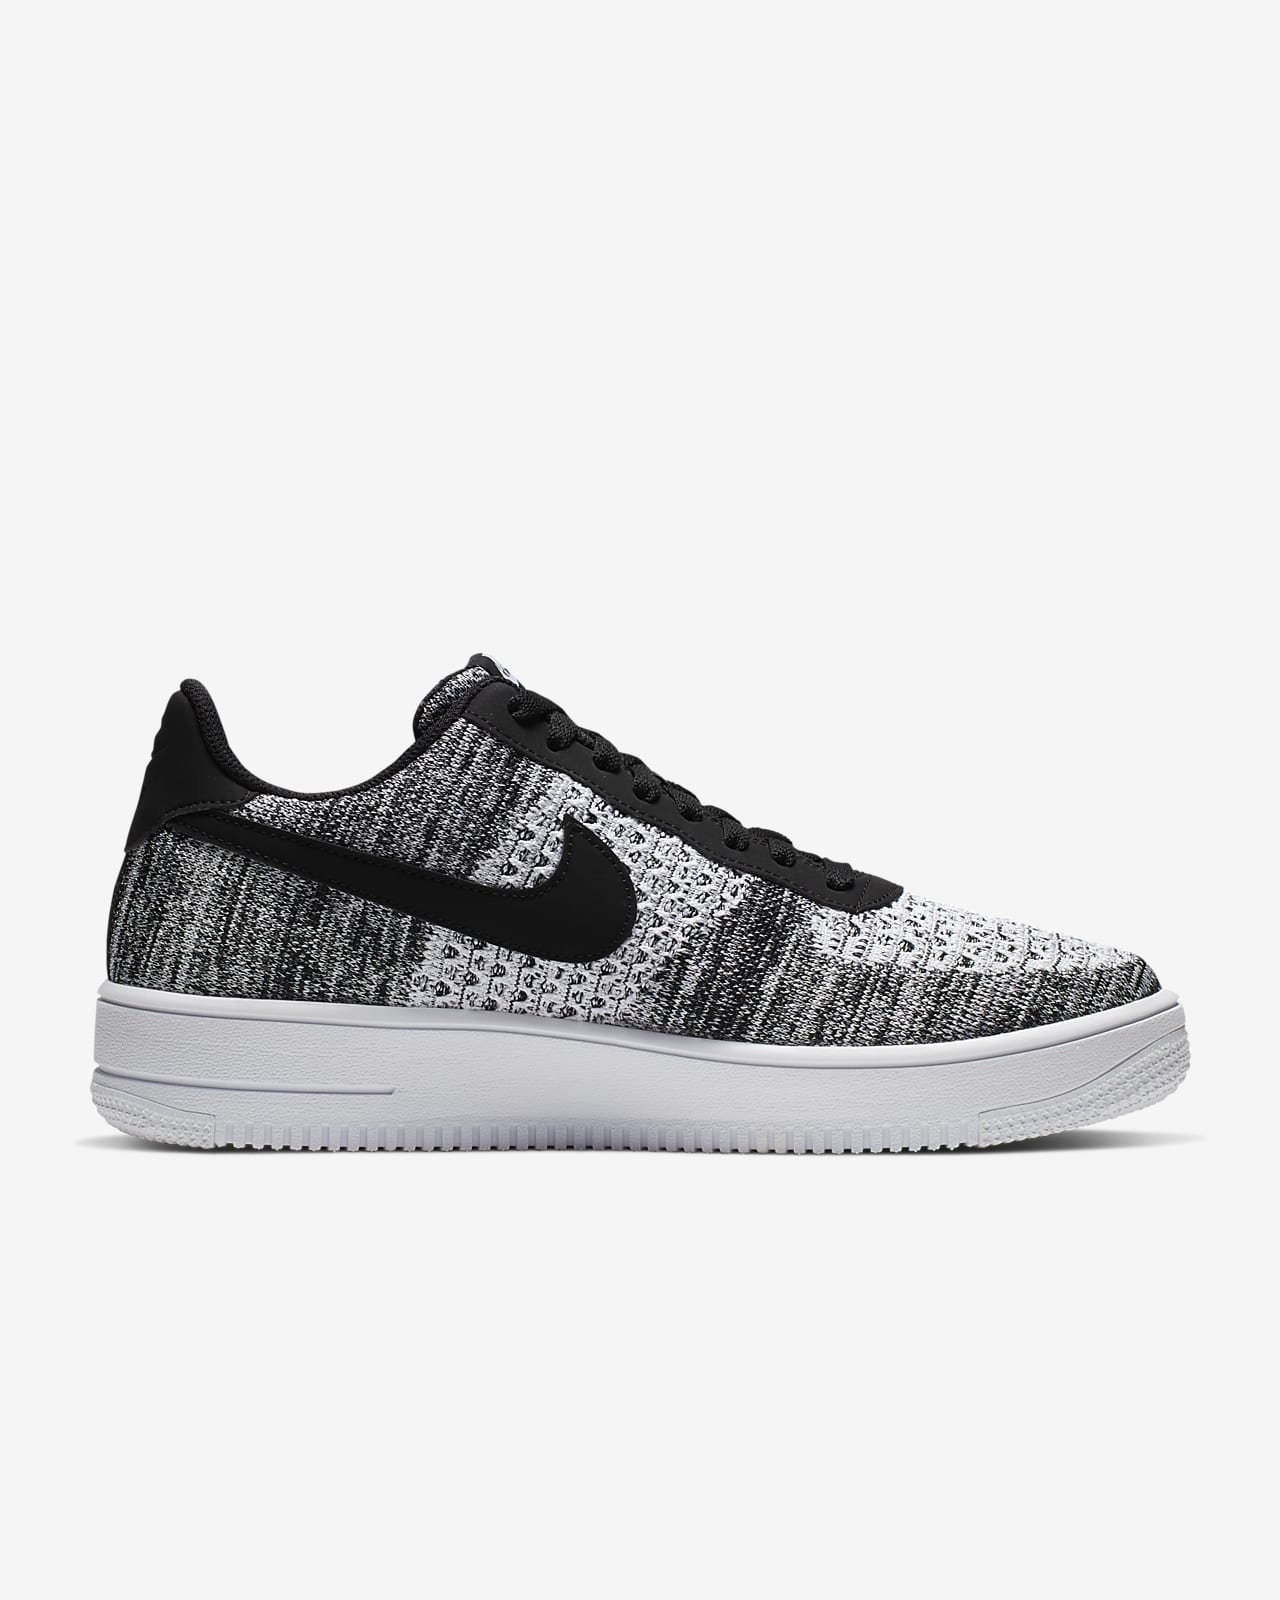 air force 1 flyknit 2.0 uomo nere